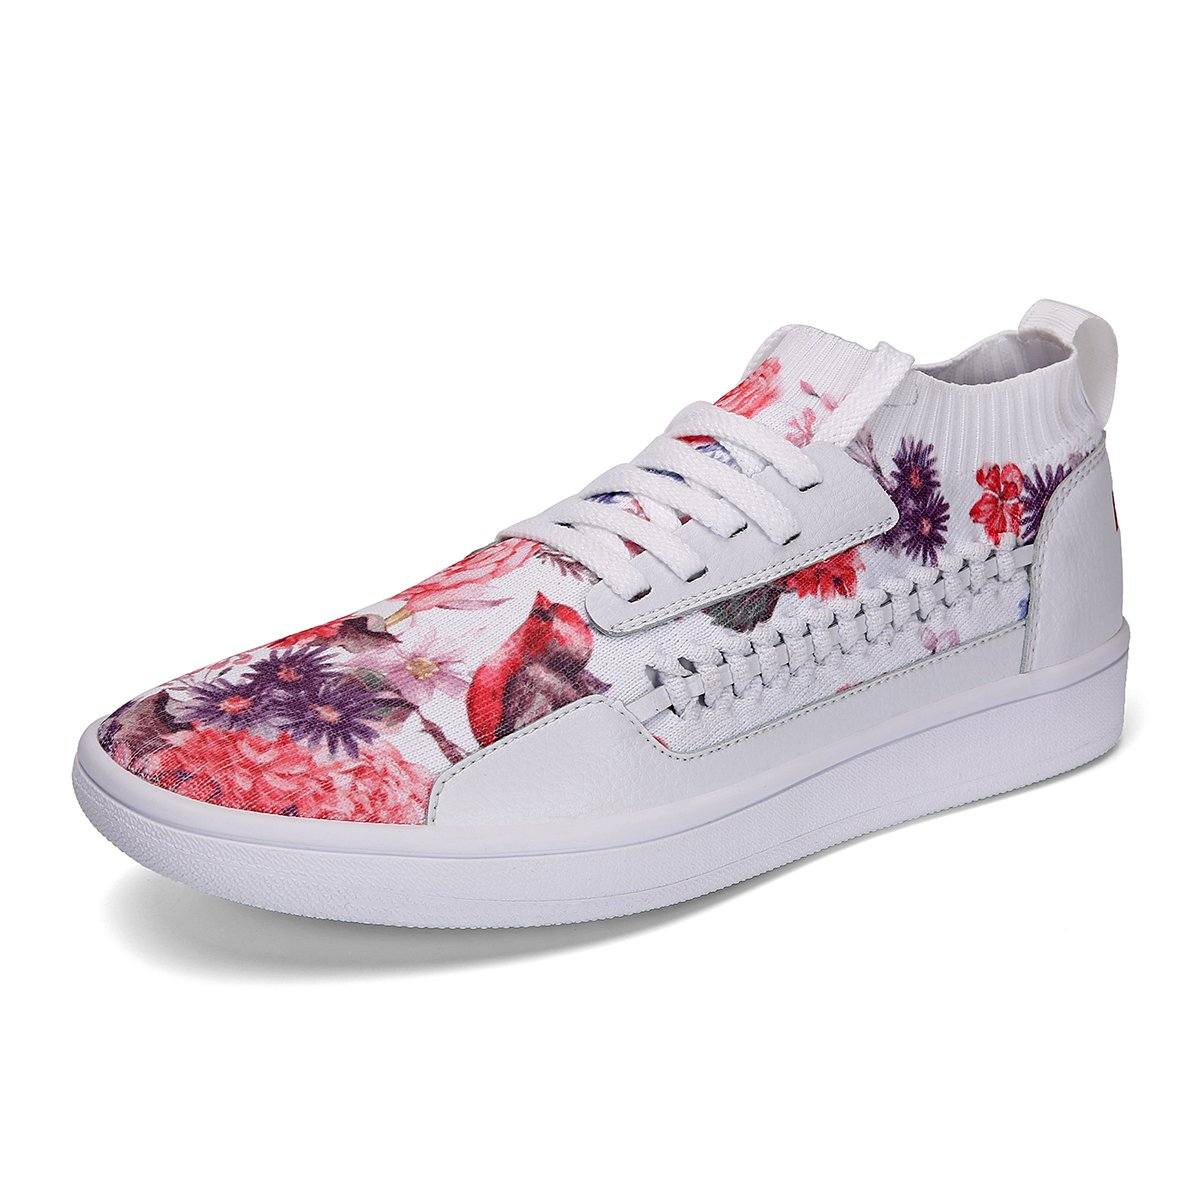 Men Women Lace Up Flower Print Knit Skateboard Shoes